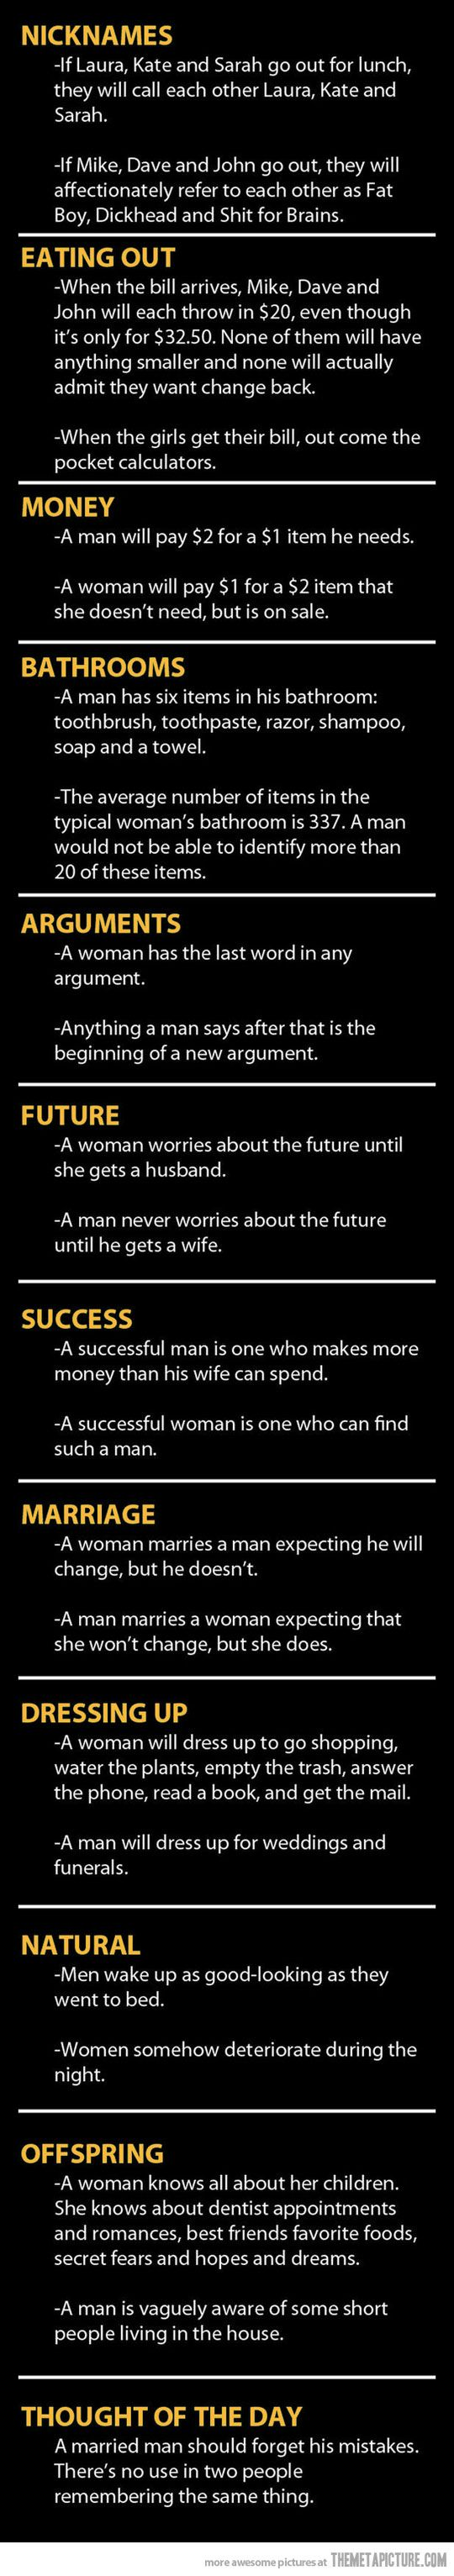 Main differences between men and women…